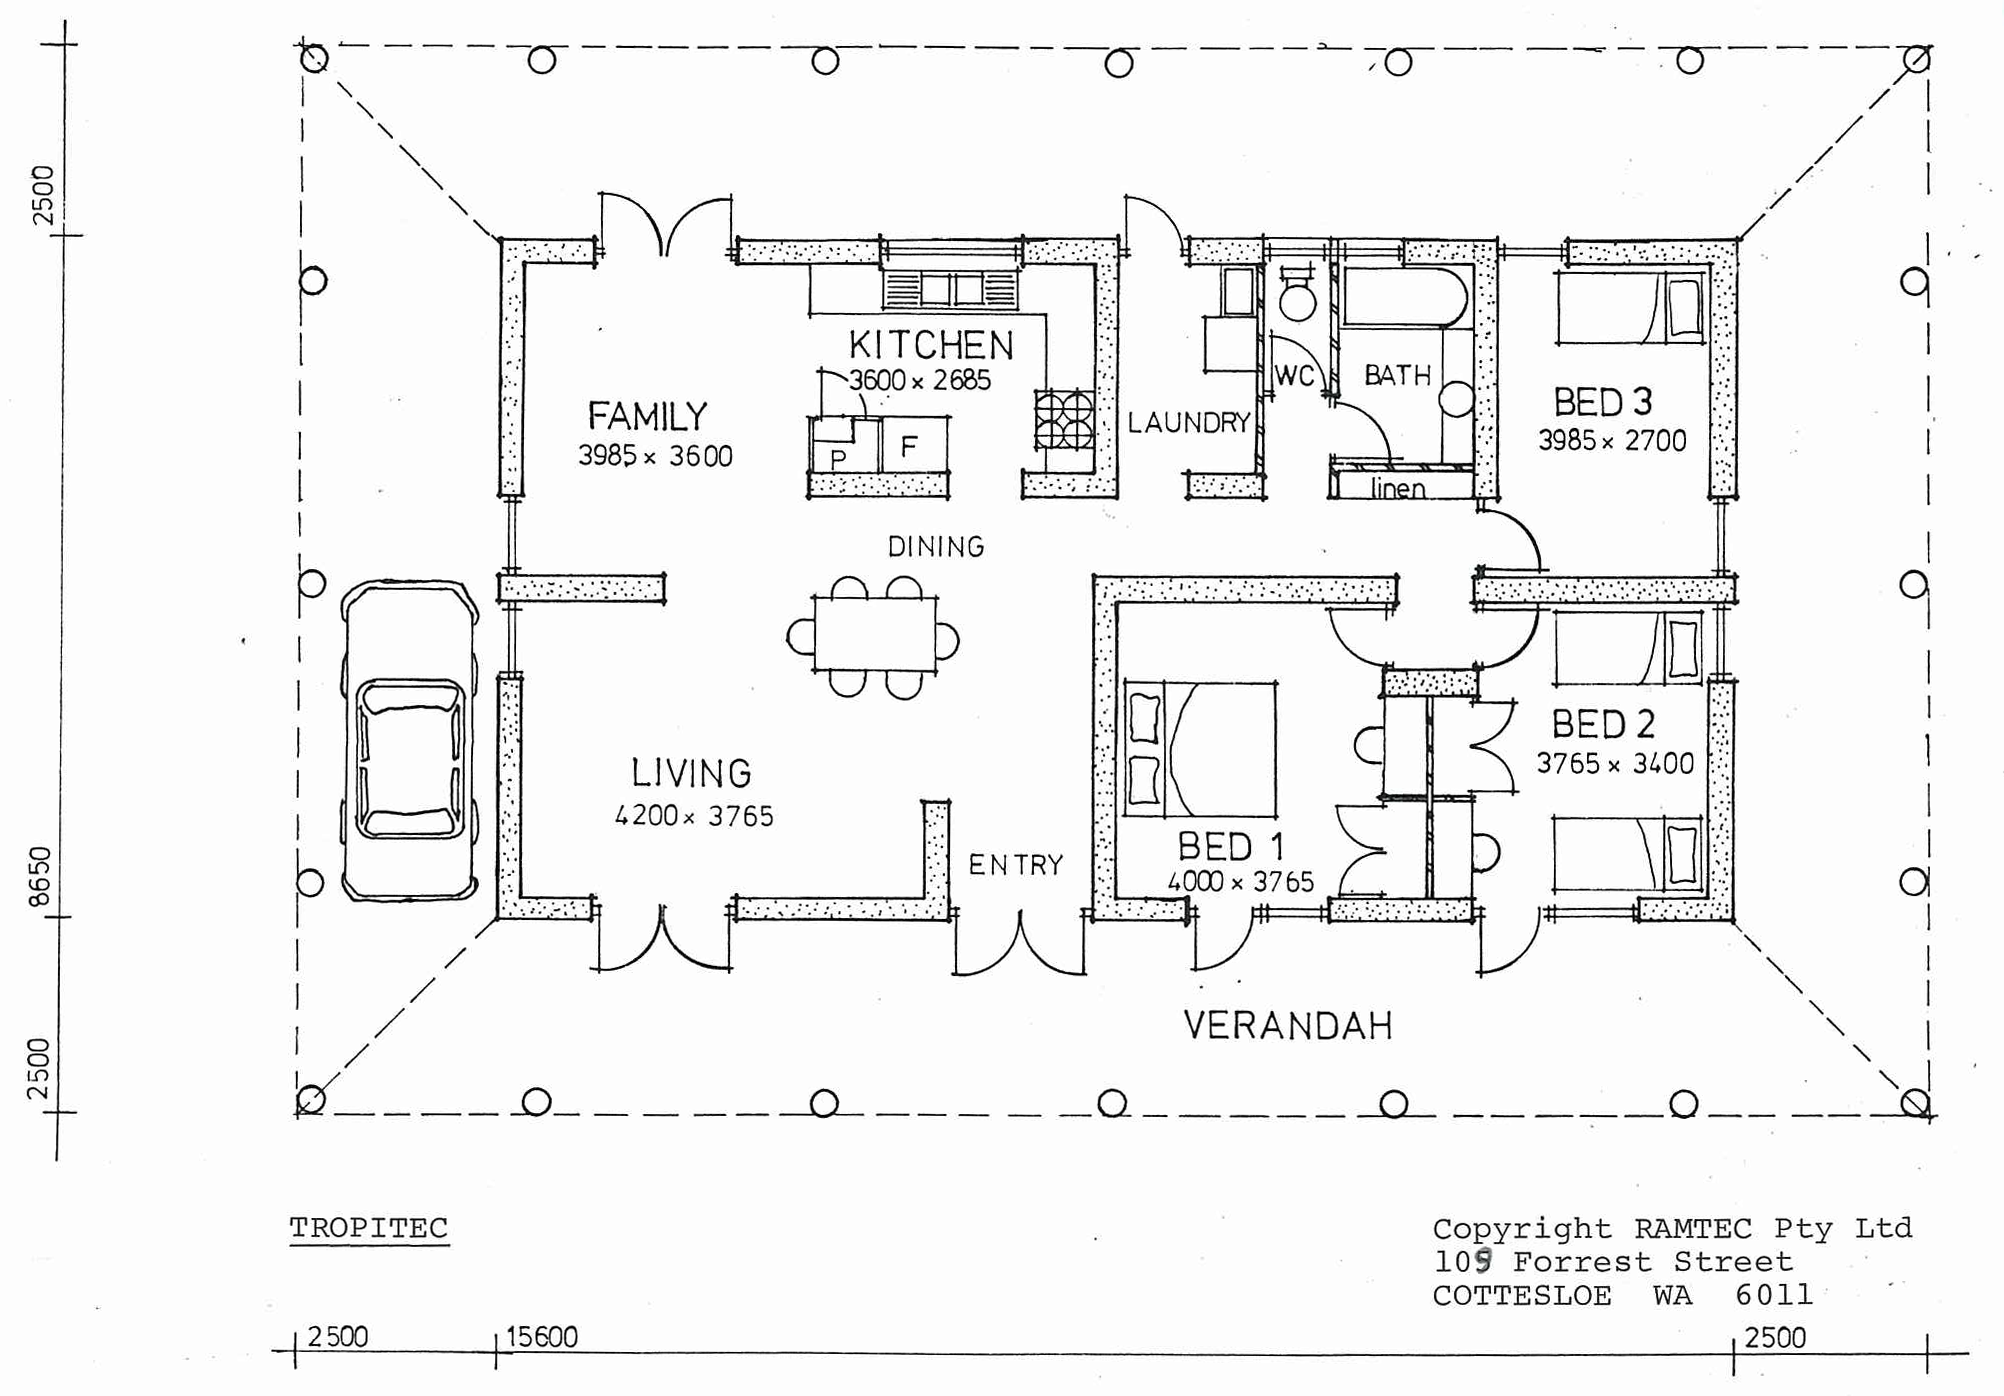 simple rammed earth floor plan | Rammed earth, Rammed earth ... on earth block home plans, energy home plans, roof home plans, cement home plans, pavilion home plans, architects home plans, earth sheltered home plans, cobb home plans, beautiful earth home plans, earthship home plans, masonry home plans, plywood home plans, sod home plans, cinder block home plans, sips home plans, church home plans, red brick home plans, mud home plans, permaculture home plans,